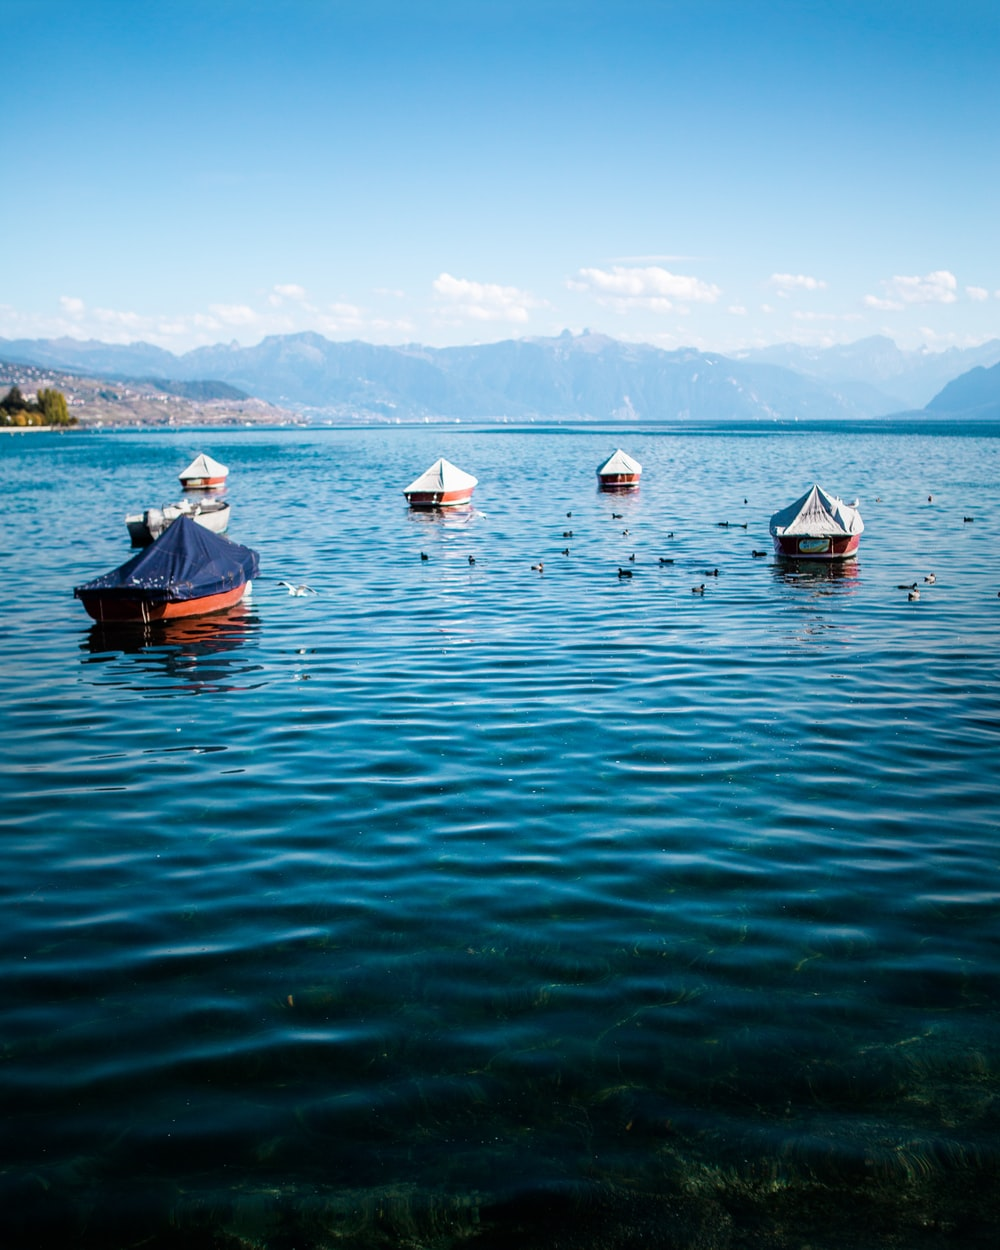 white and blue canoes on body of water during daytime